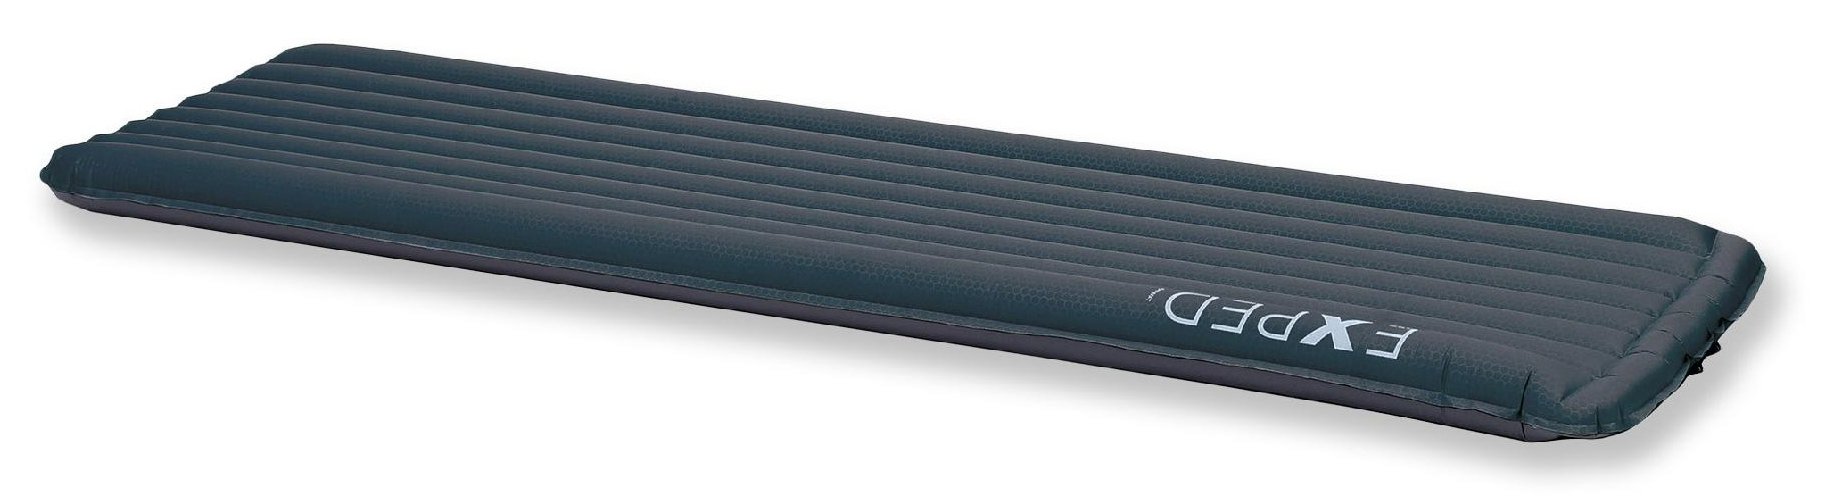 Exped DownMat Insulated Backpacking Sleeping Pad